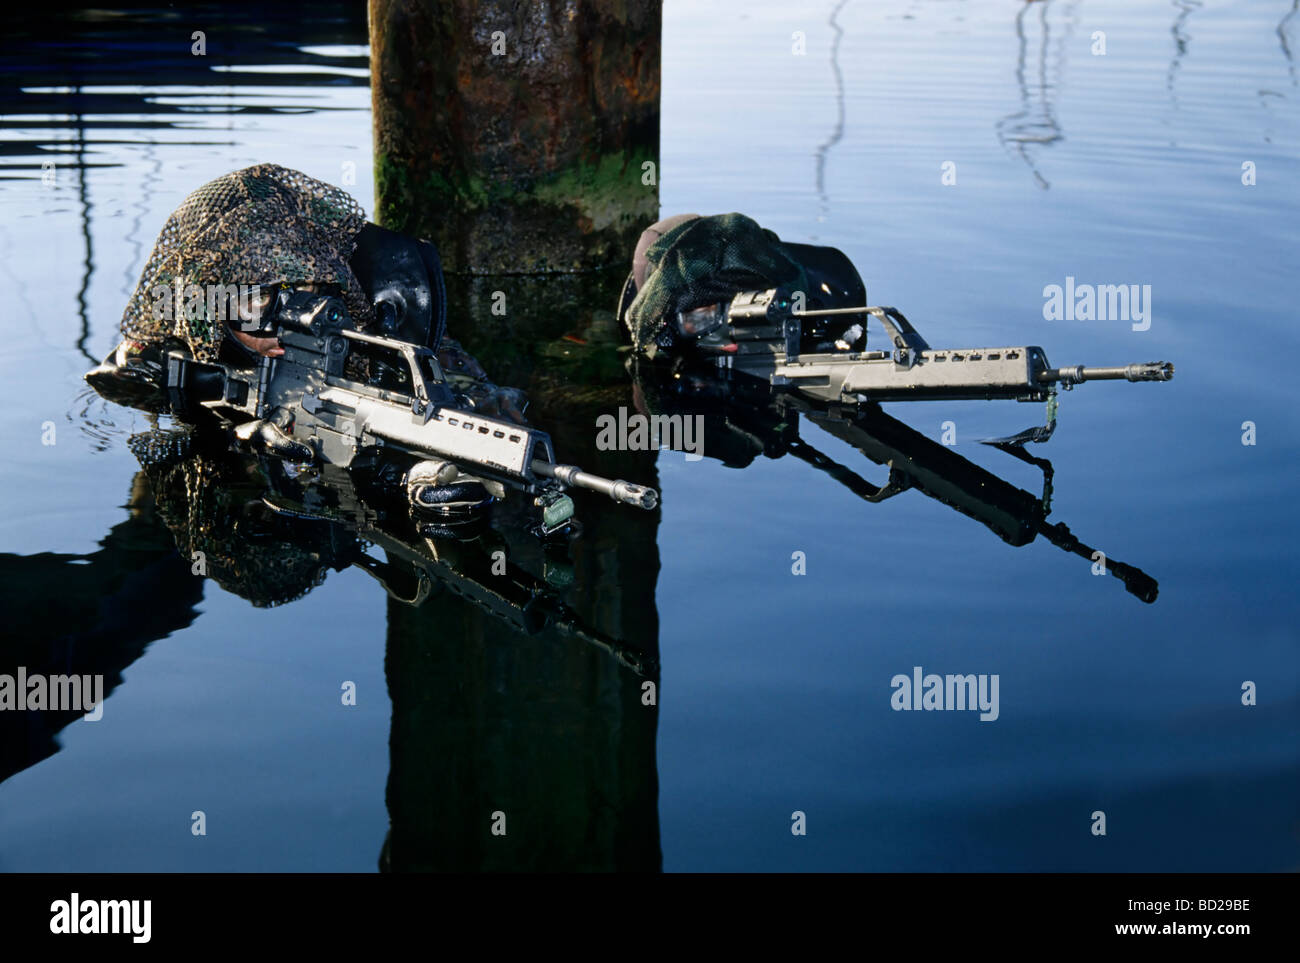 Soldiers of the special forces unit 'Kampfschwimmer' of the Deutsche Marine Germany Navy in simulation of - Stock Image